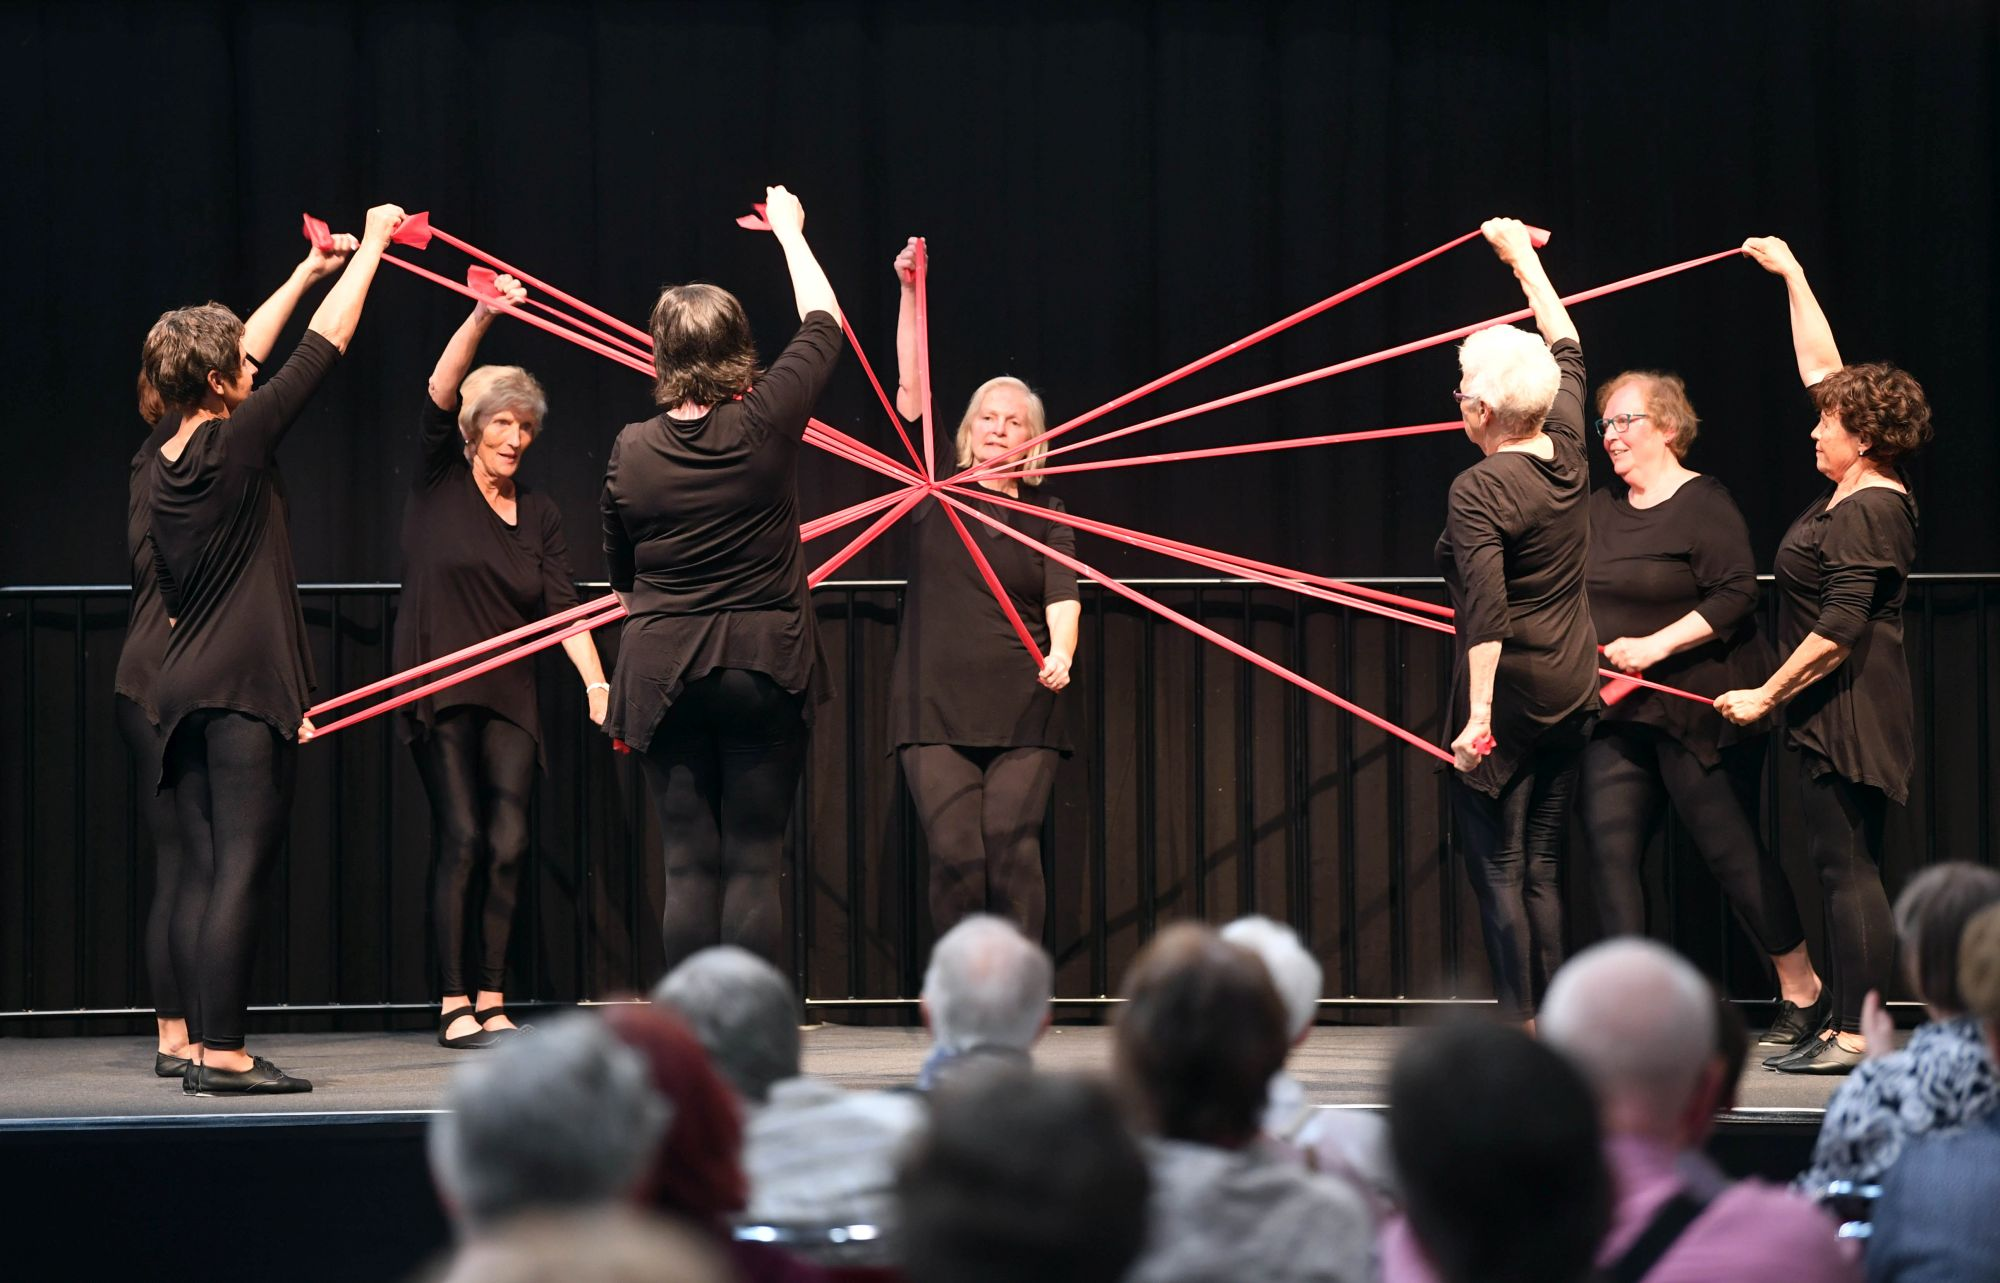 A group of women dressed in black stands in a circle on stage with a black curtain behind them. The women hold red ribbons which are building a knot in the centre of the circle